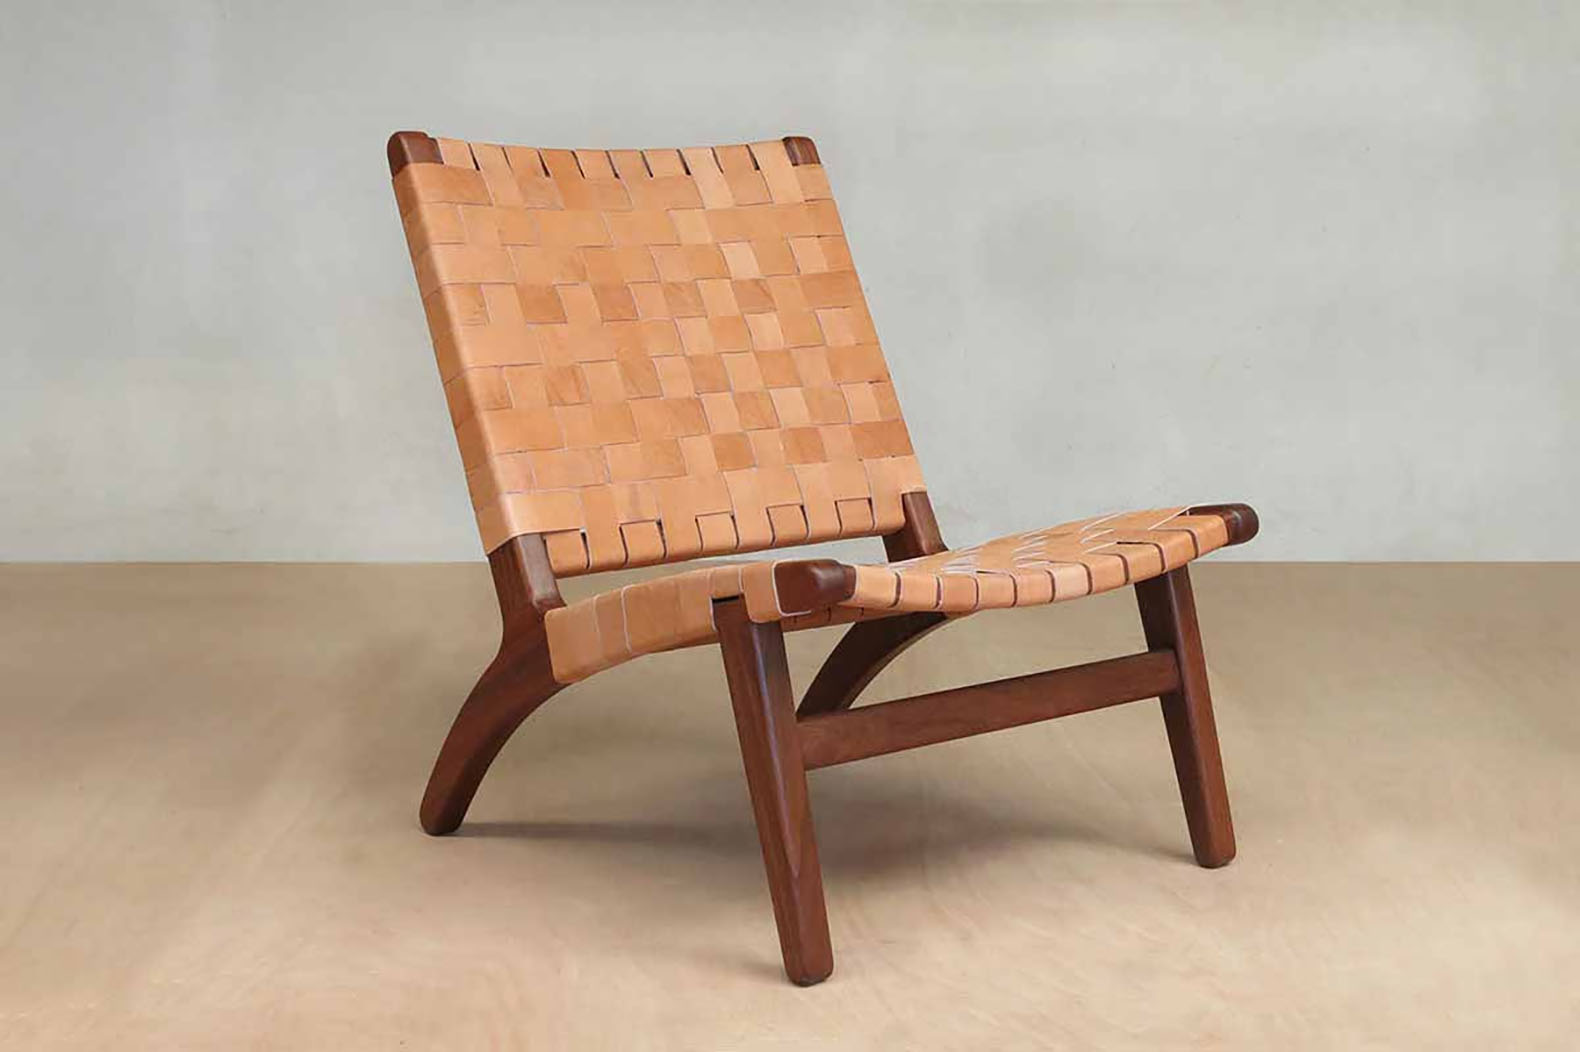 Incroyable Masaya U0026 Company Plants 100 Trees For Every Piece Of Furniture They Sell